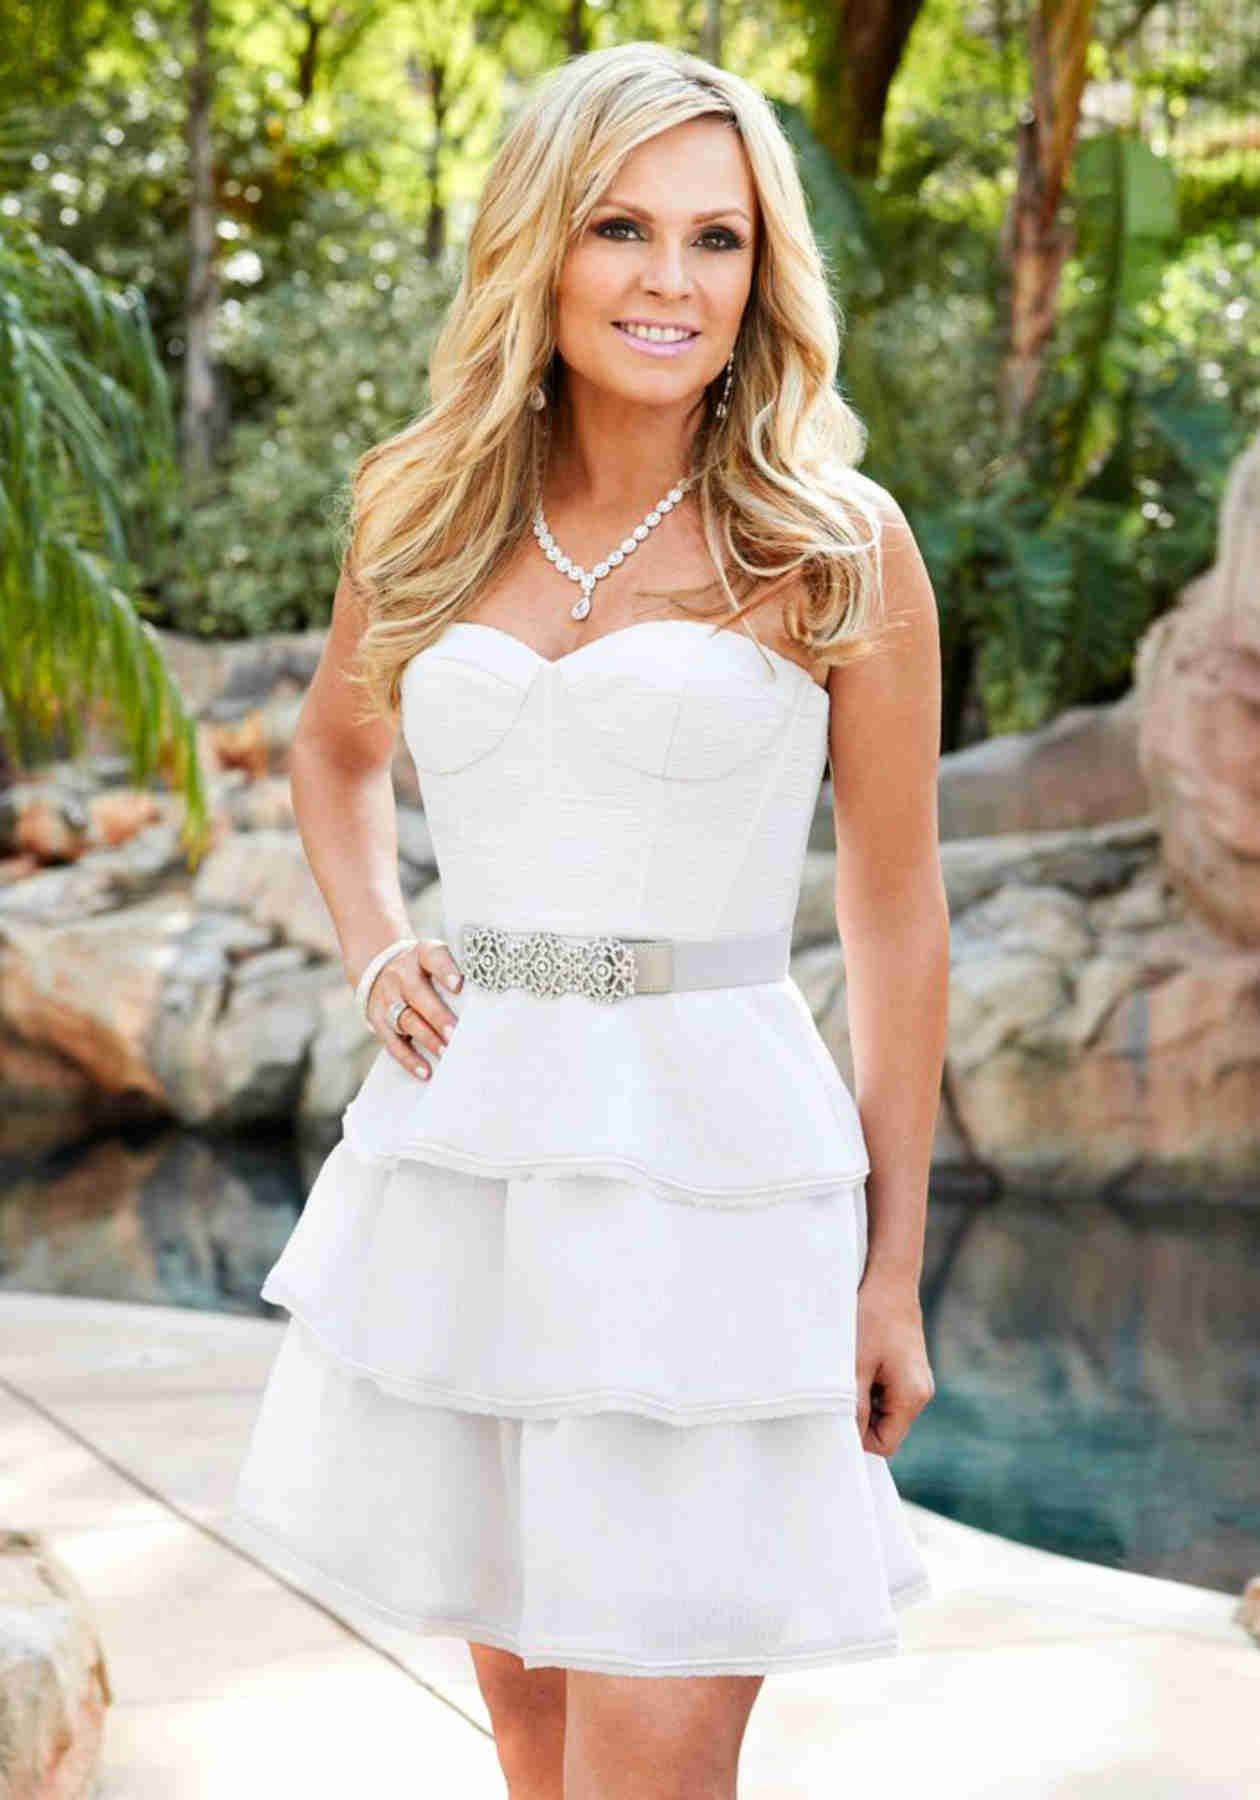 Tamra Barney Clears Up RHOC Rumors: I'm Not Fired or Getting Divorced!